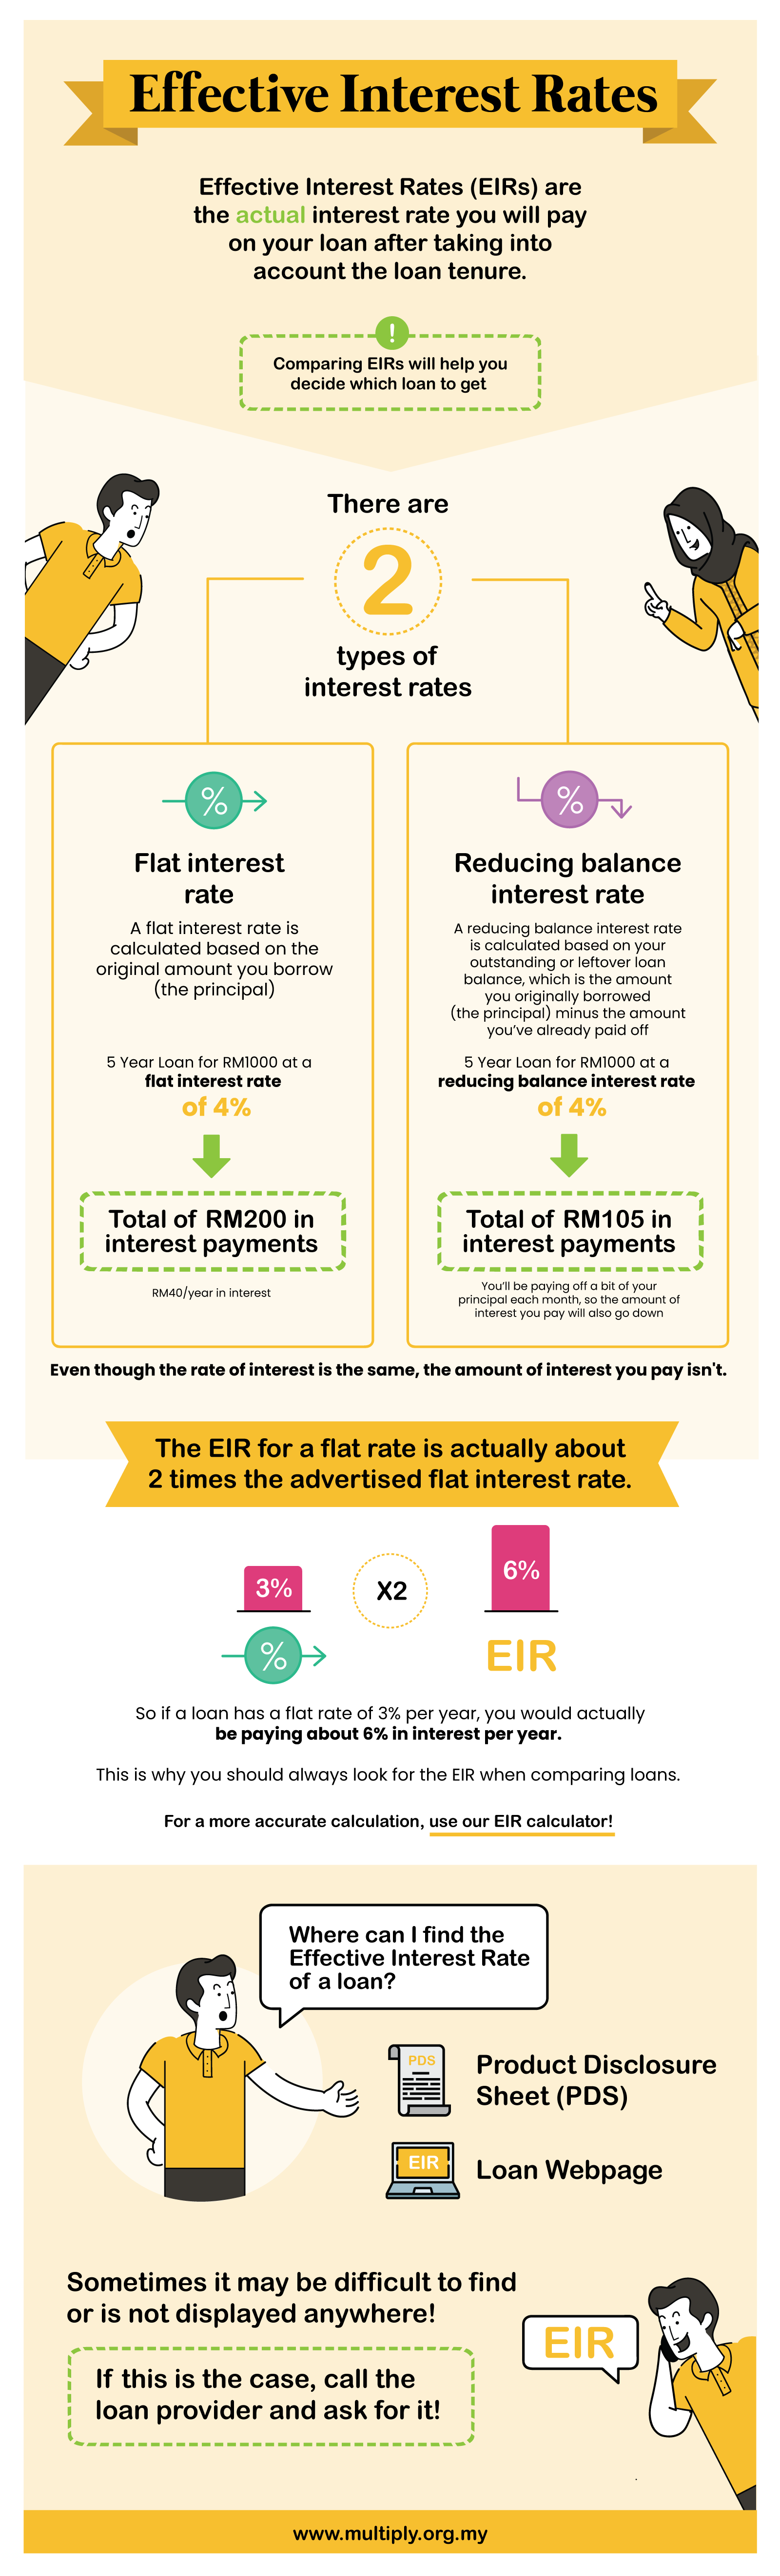 Understanding the Effective Interest Rate (EIR) 3 - Multiply - Tackling Debt